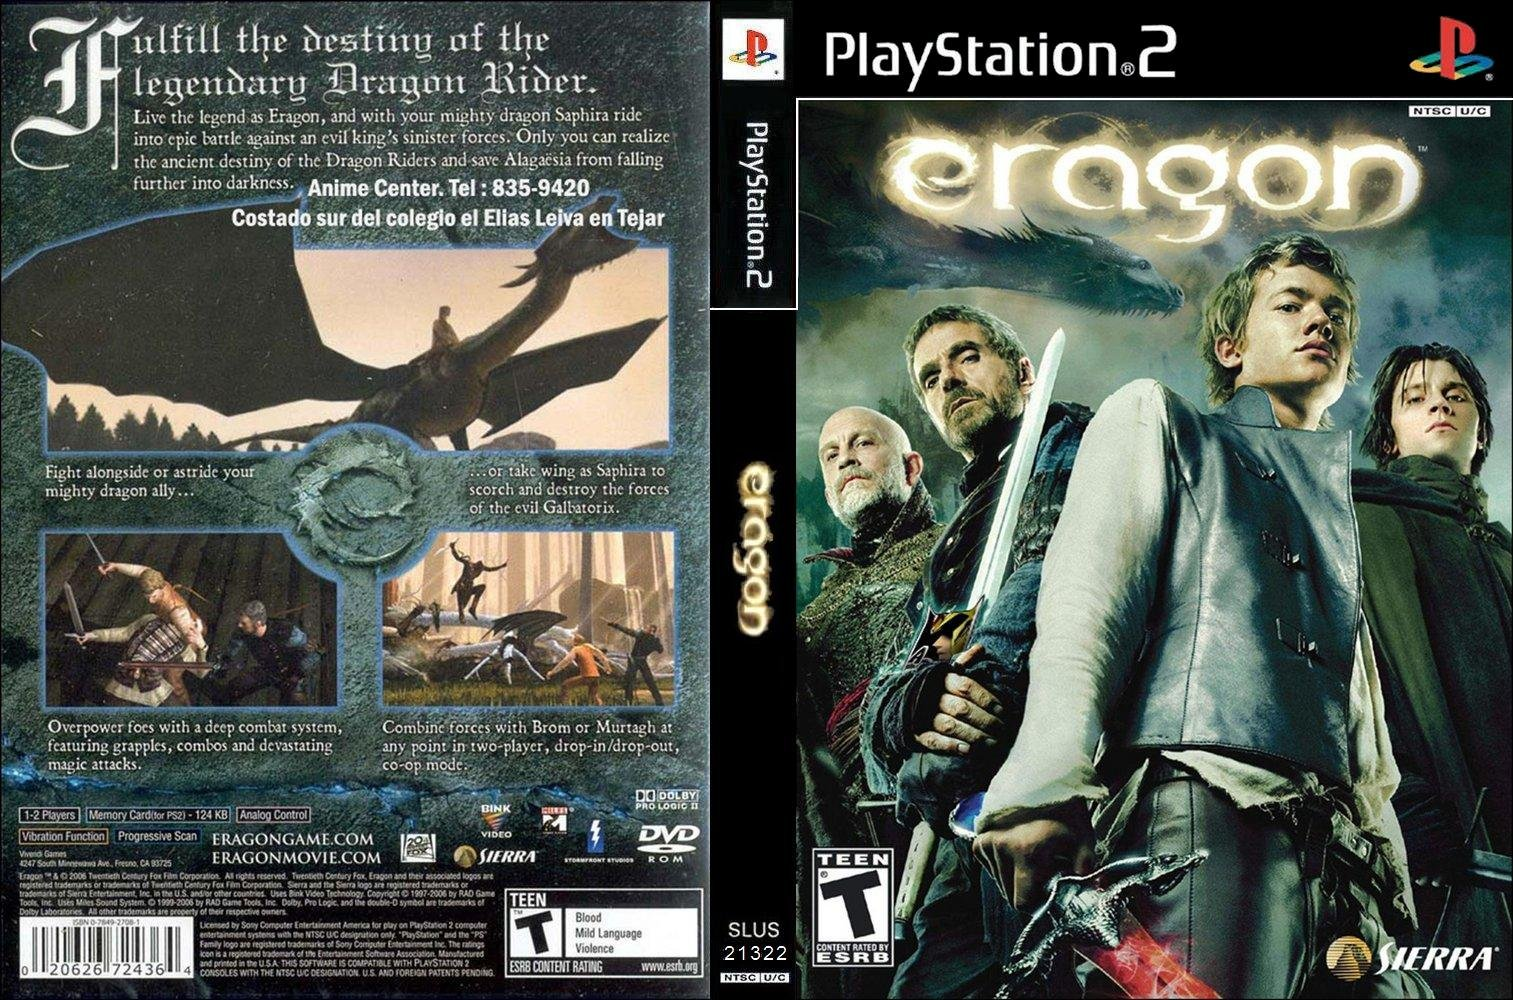 Download game eragon ps2 full version iso for pc | murnia games.